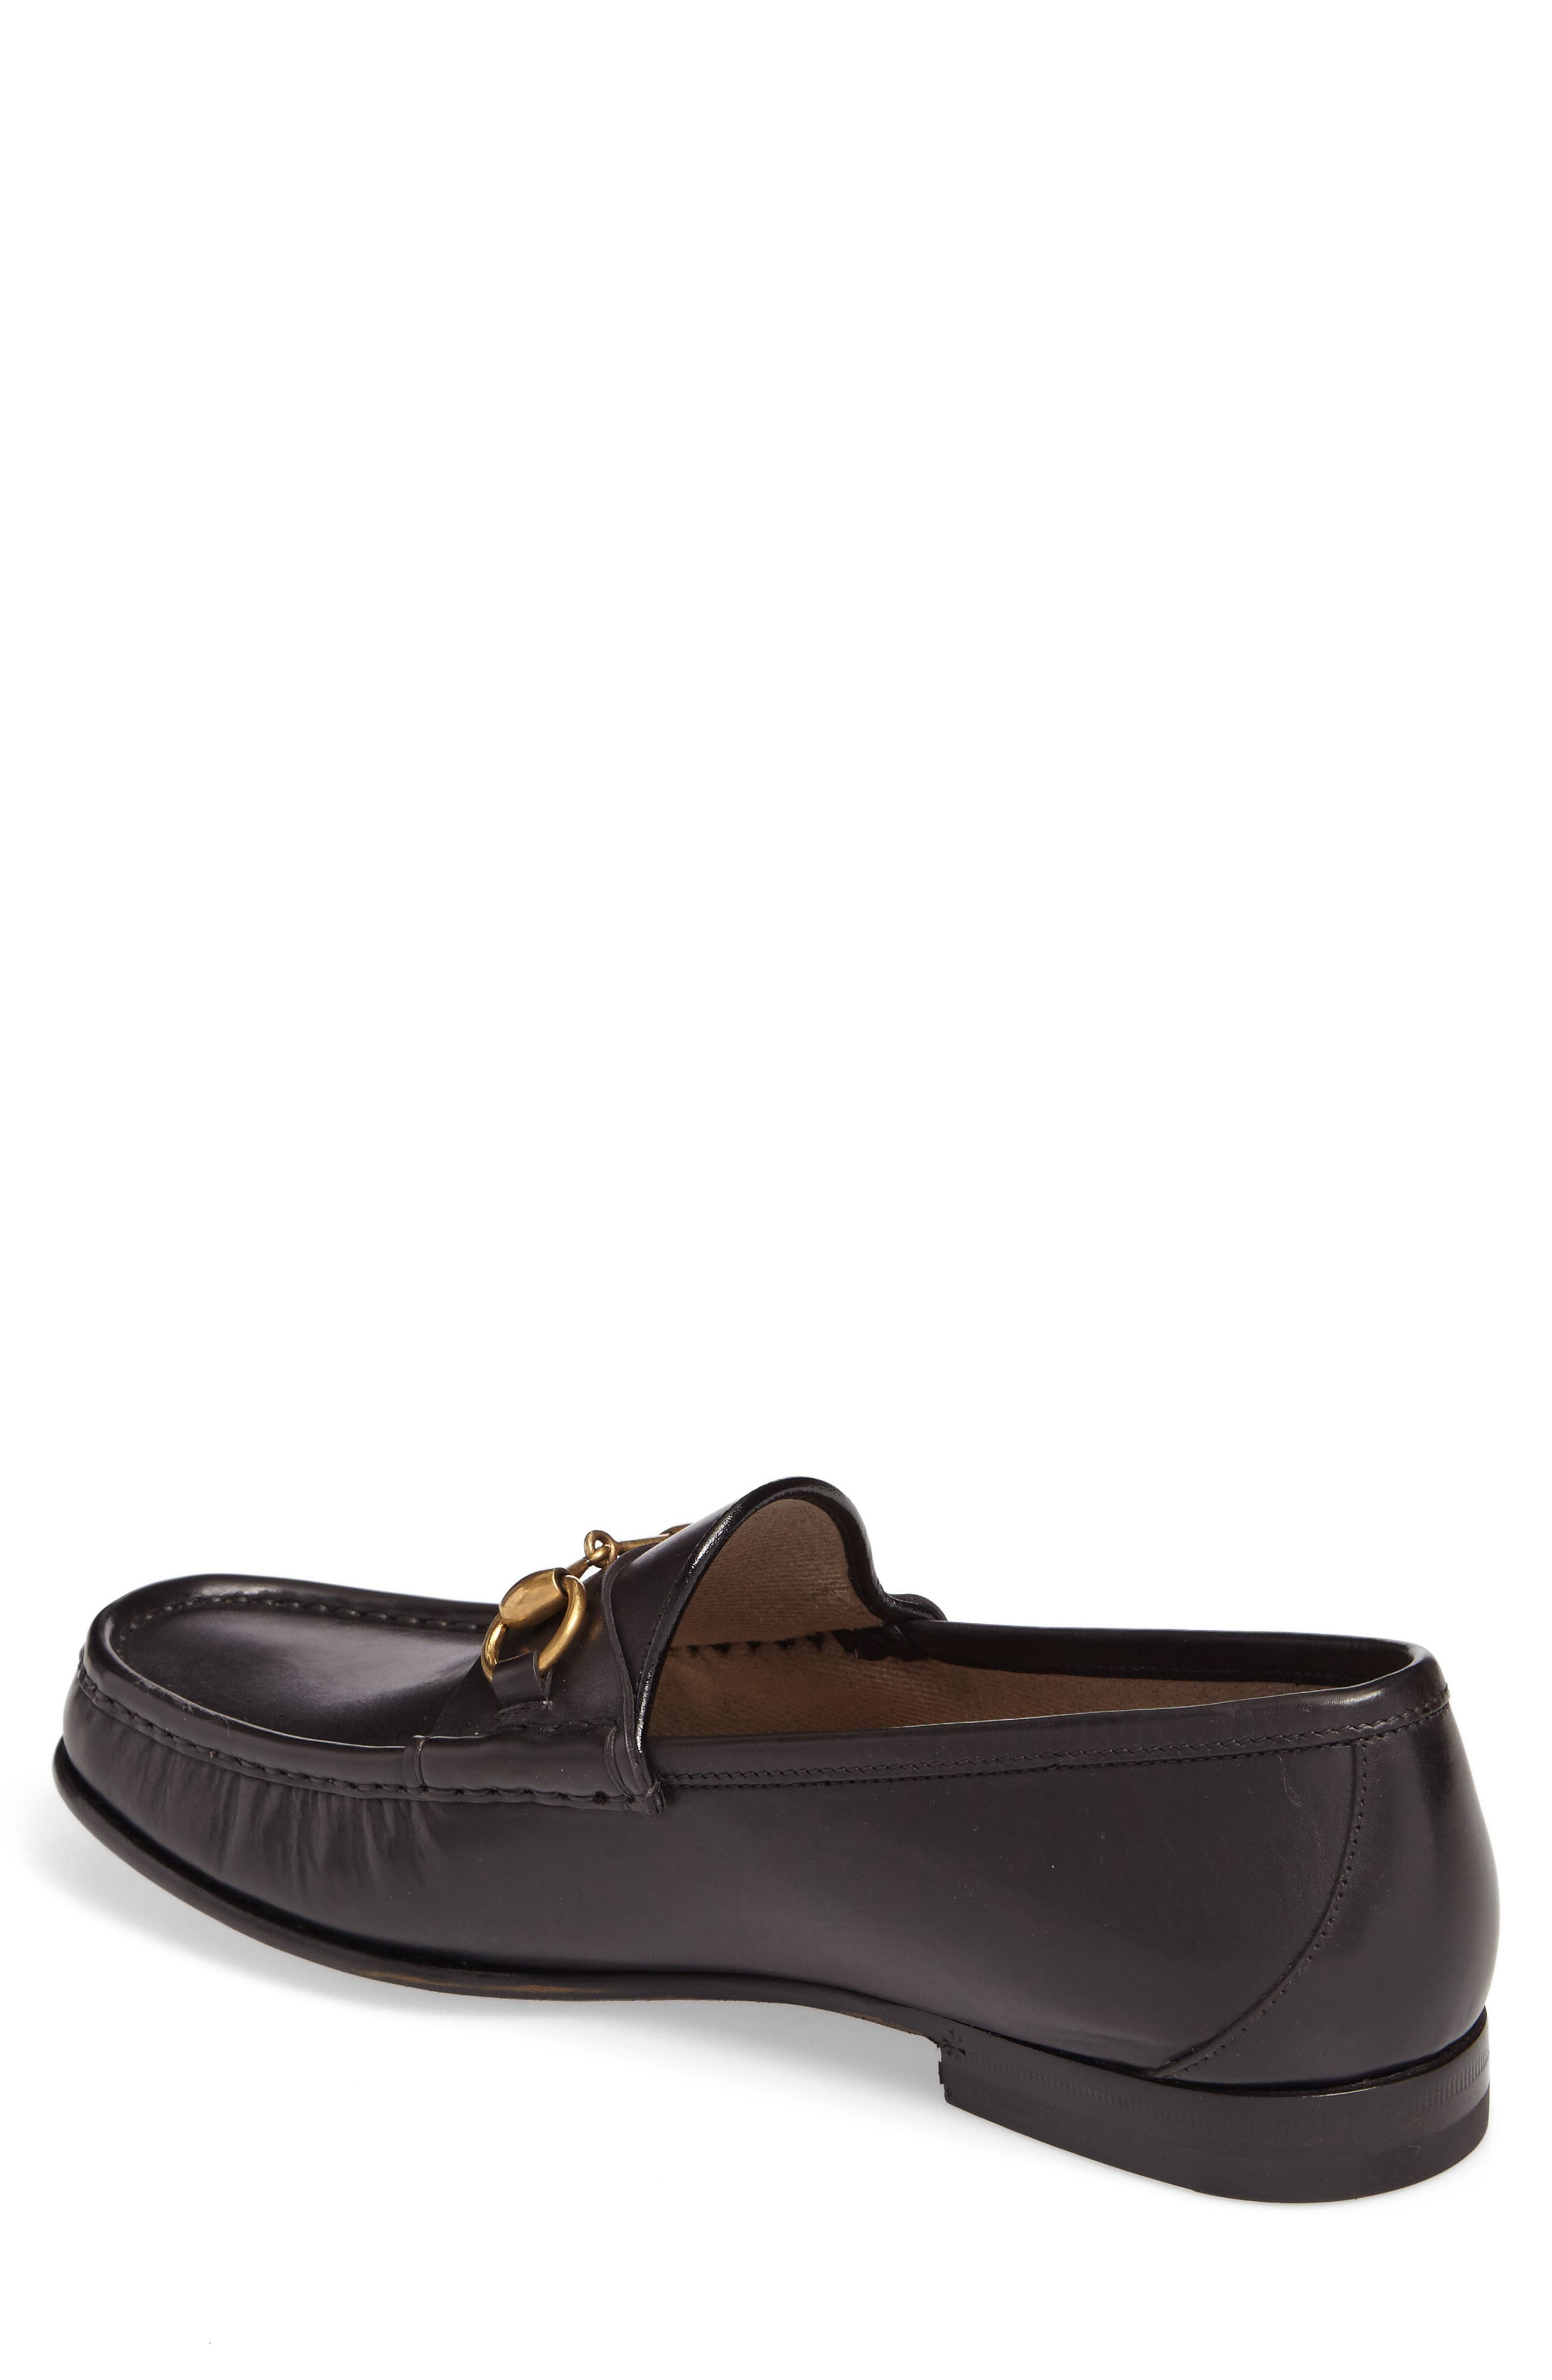 'Roos' Bit Loafer,                             Alternate thumbnail 2, color,                             Nero